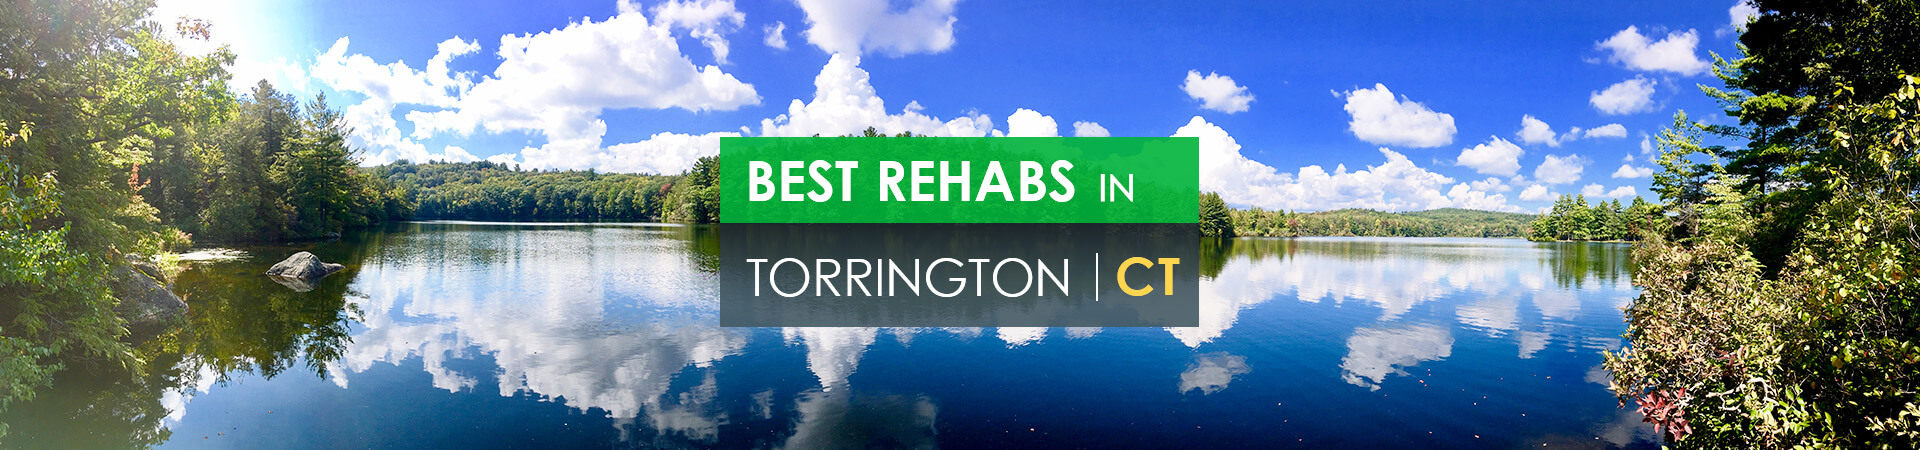 Best rehabs in Torrington, CT